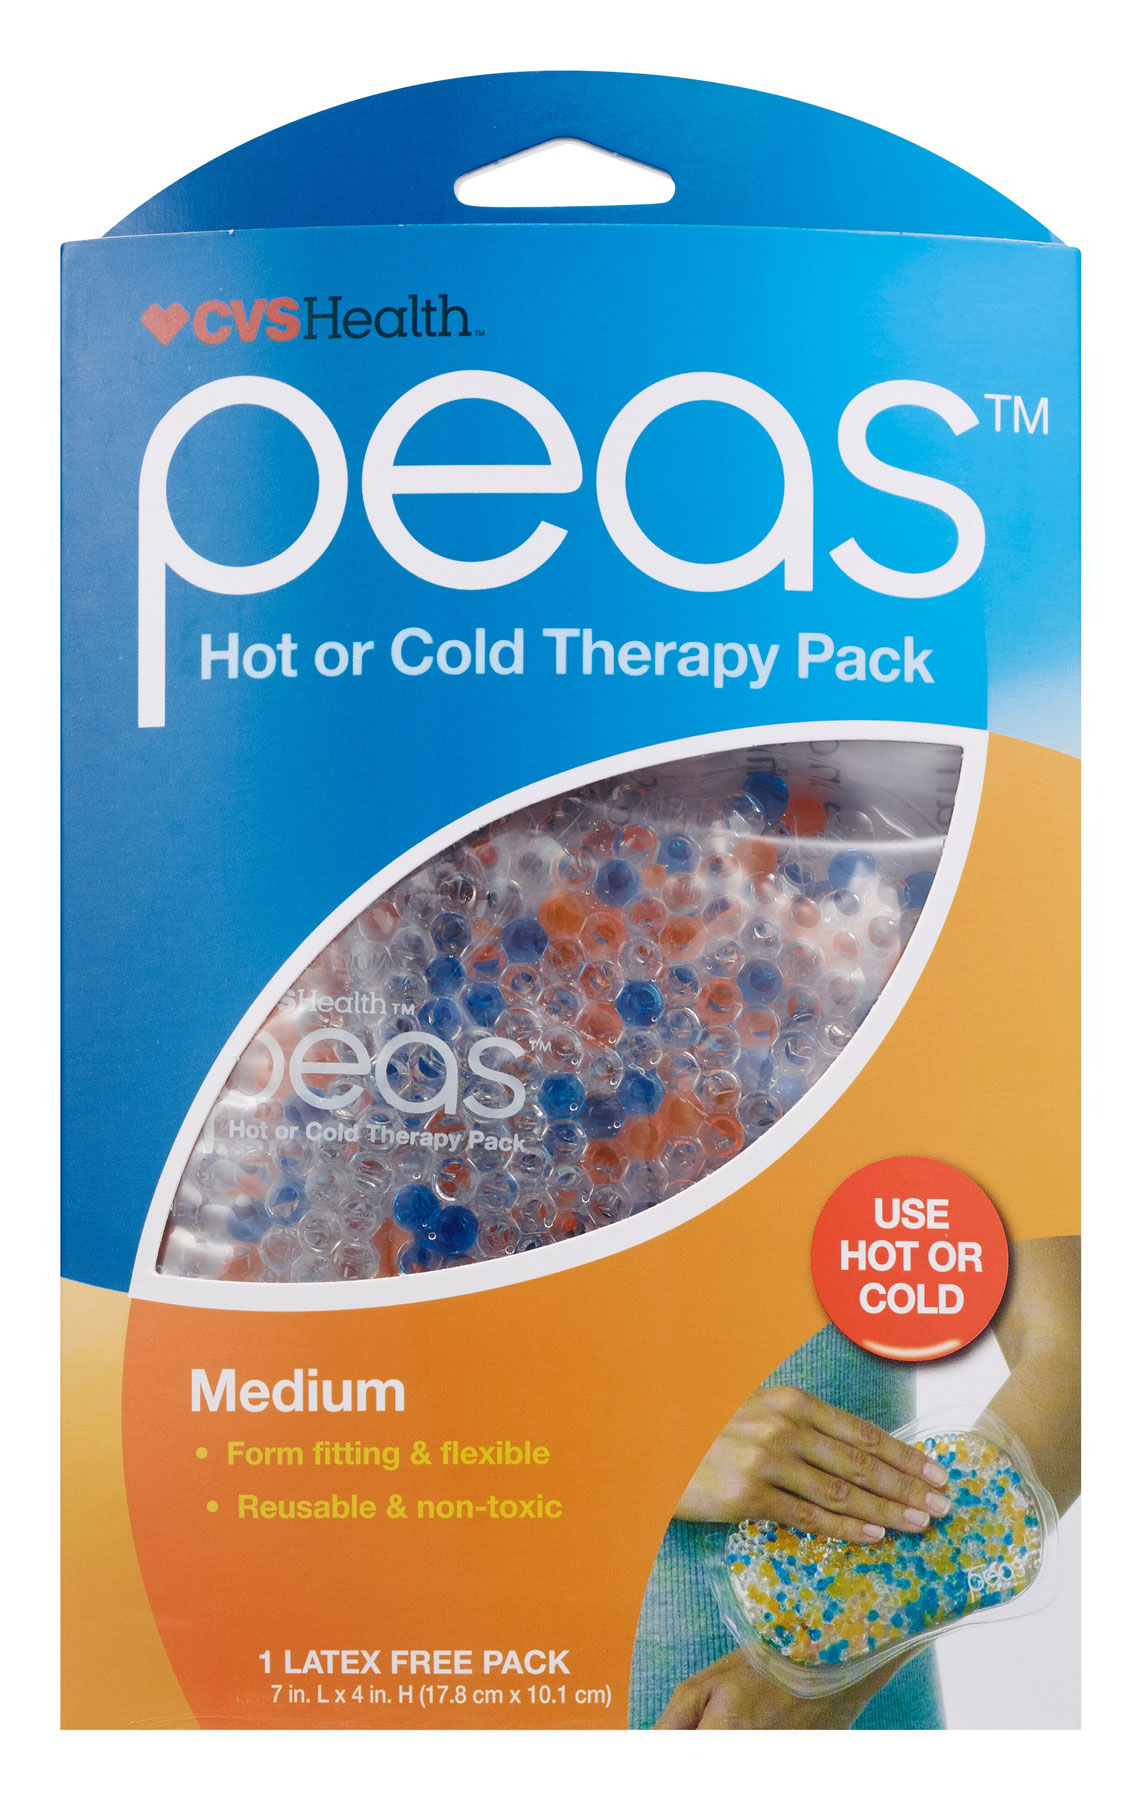 Gifts for Sick or Injured People and quarantine gift ideas - CVS Health Peas Hot or Cold Therapy Pack